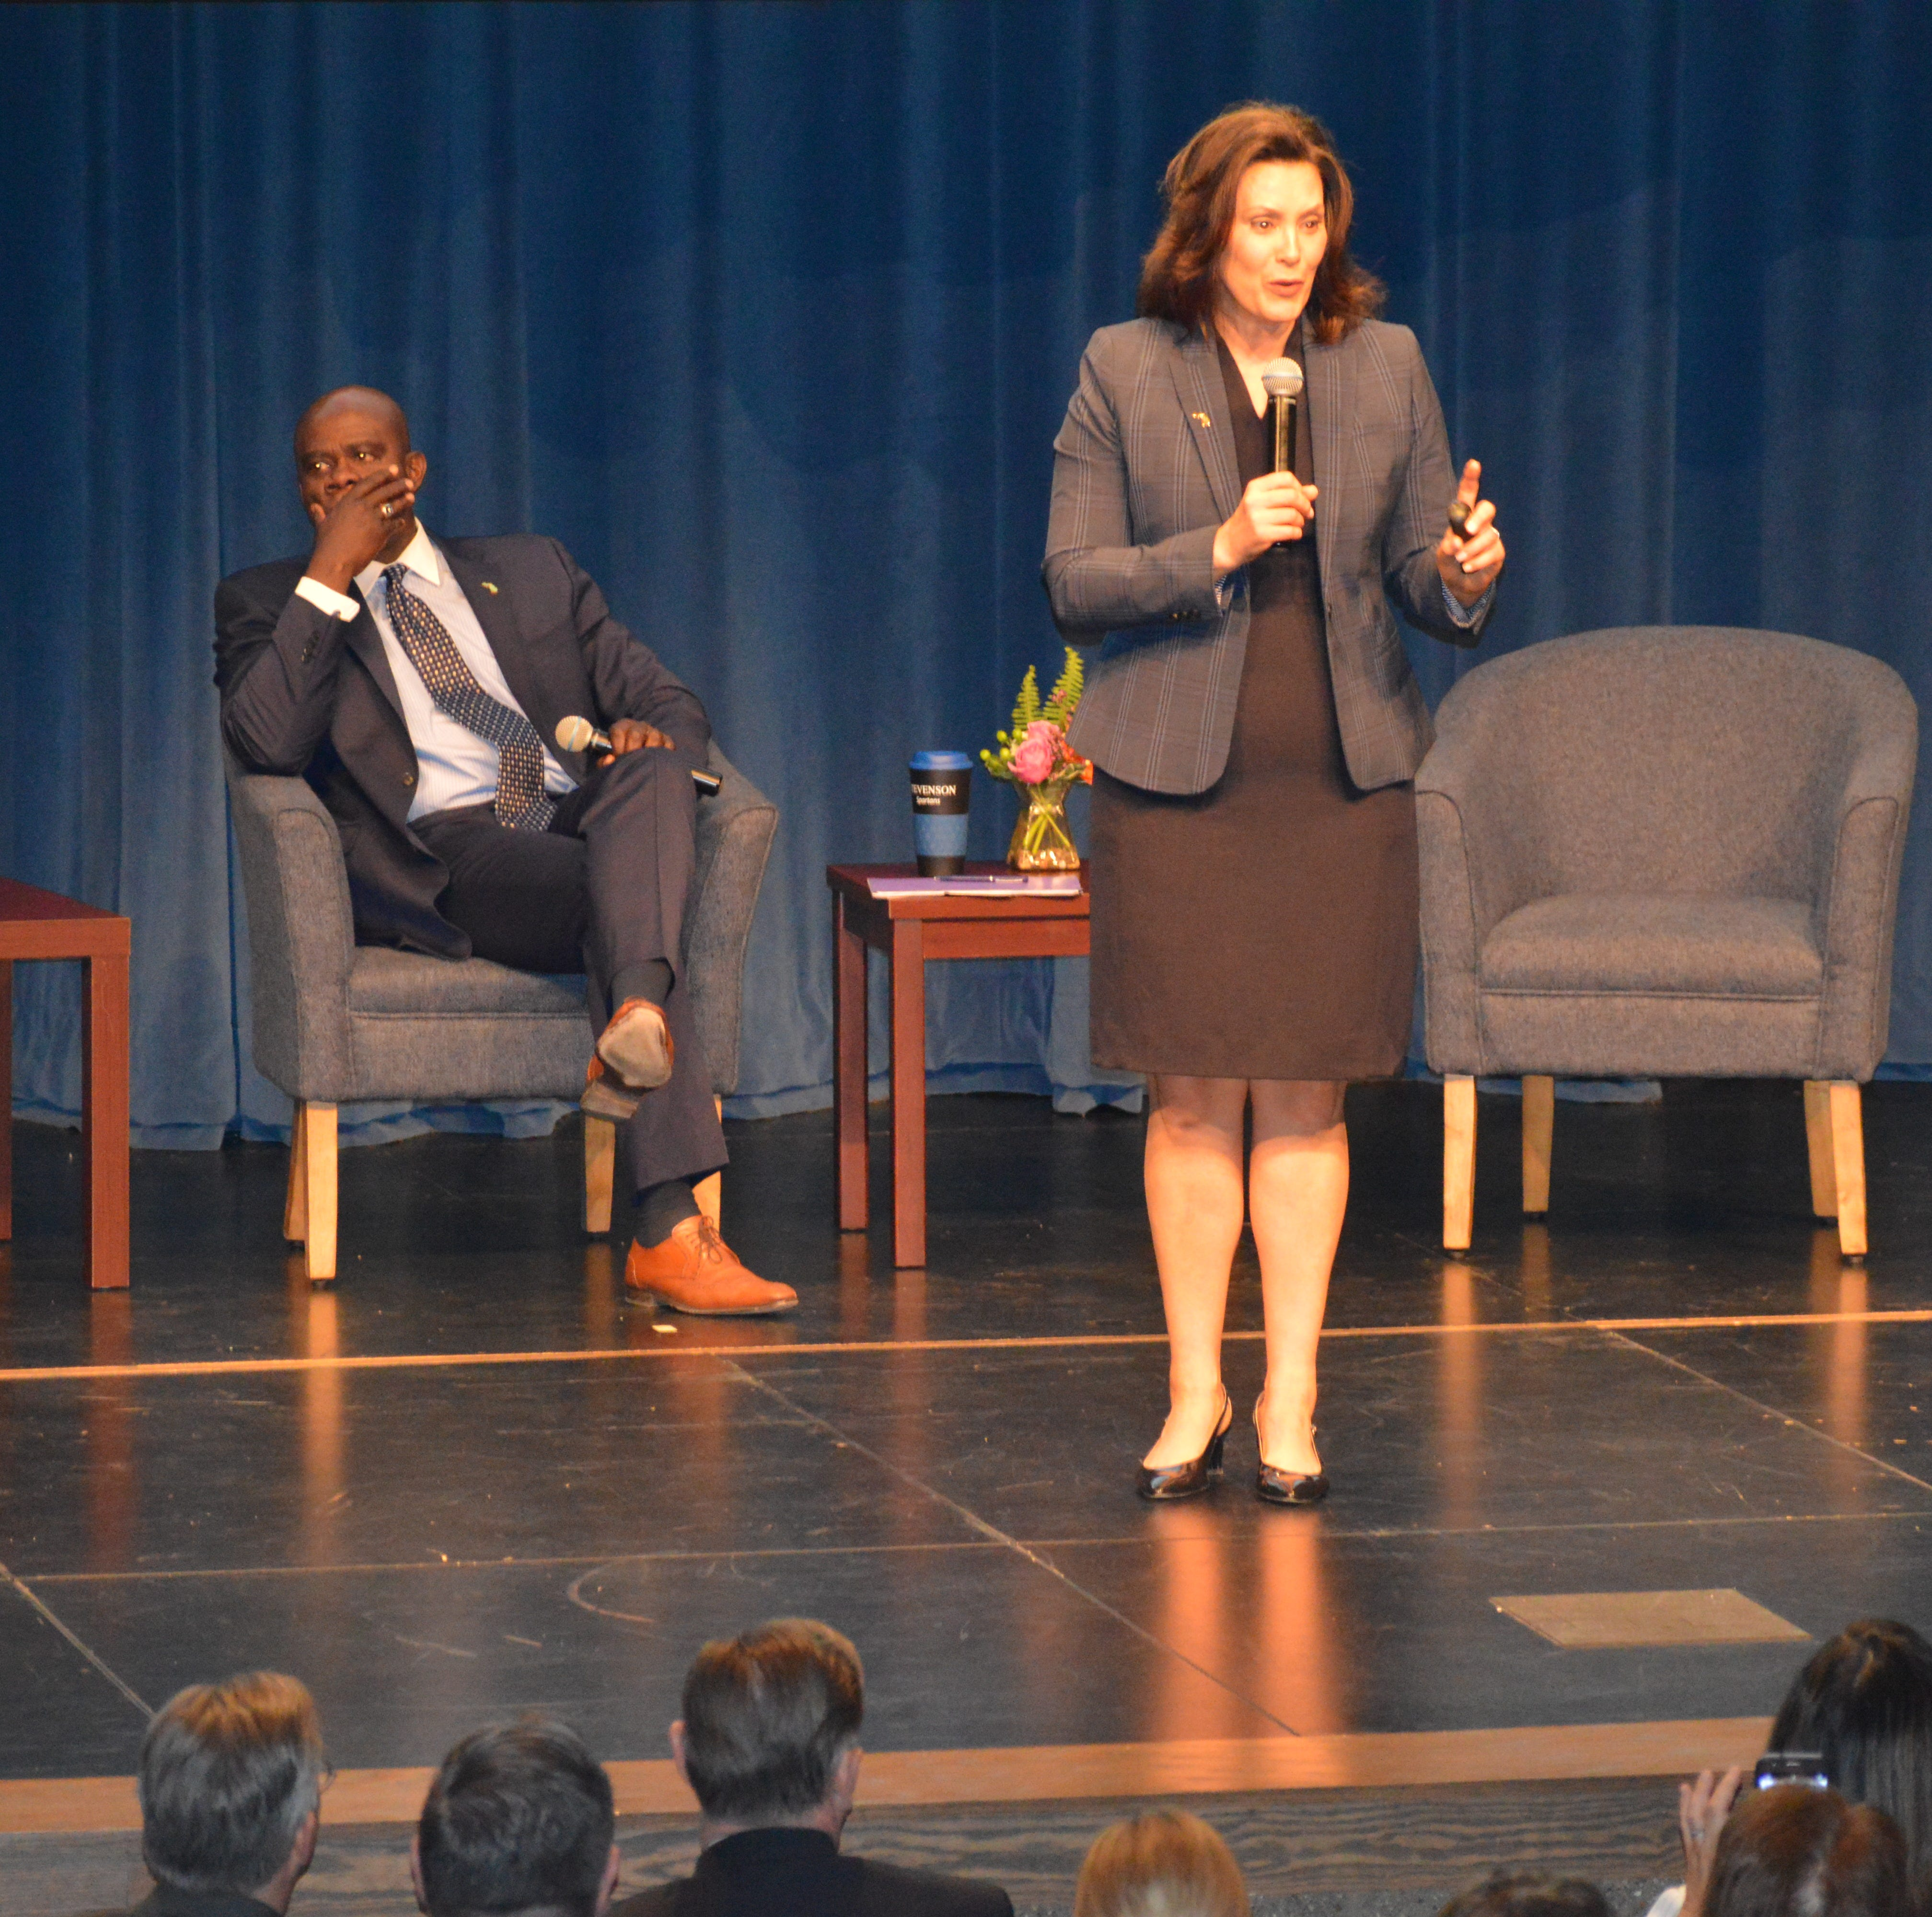 Gov. Gretchen Whitmer visits Livonia Stevenson to talk roads as part of town hall tour